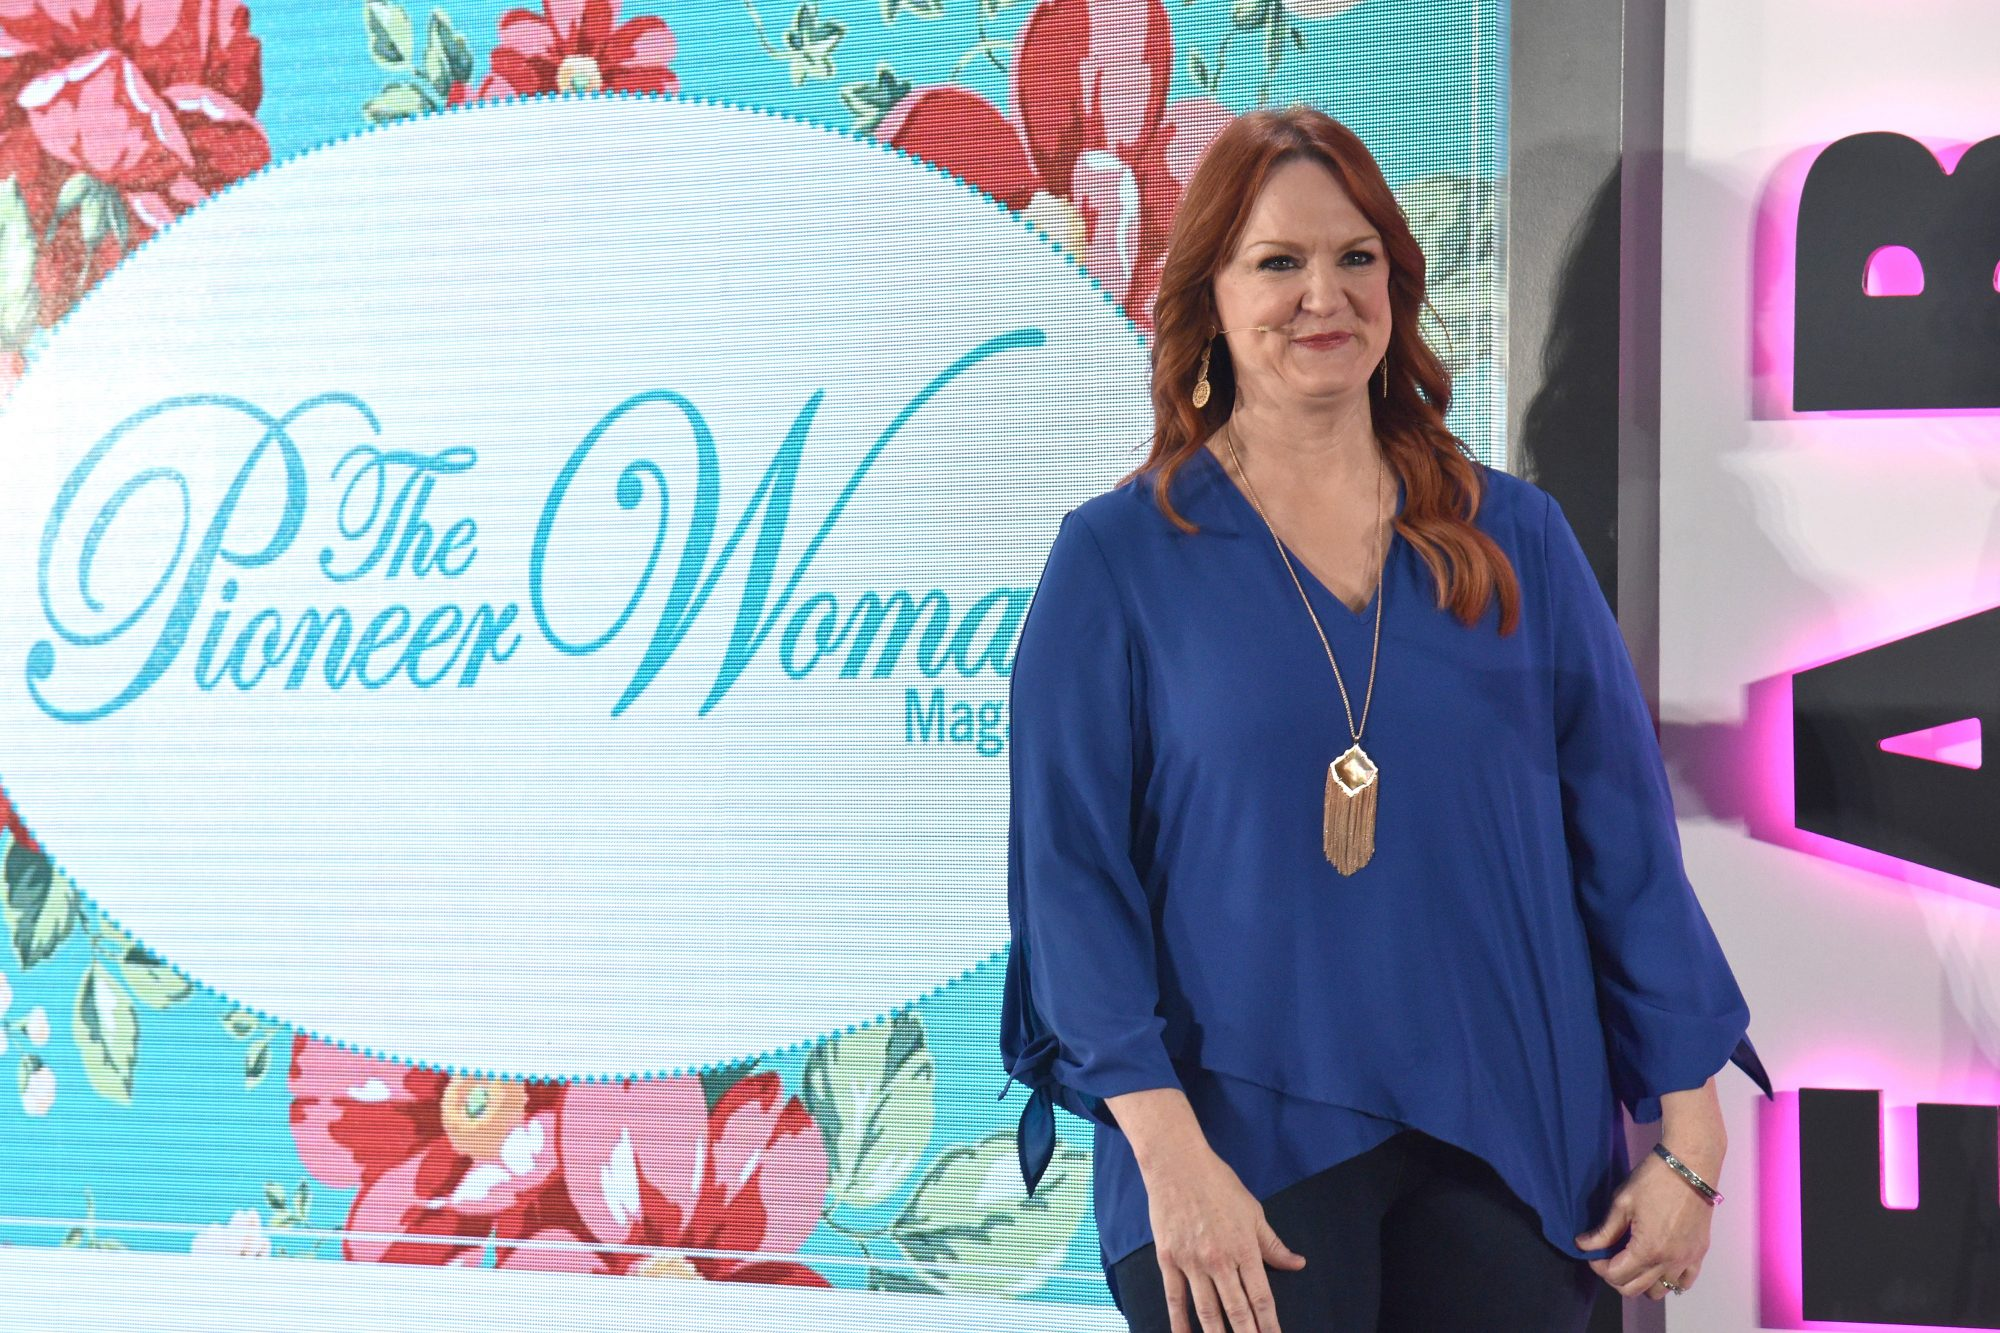 Ree Drummond Admits This Is The Biggest Cooking Mistake She's Ever Made on TV